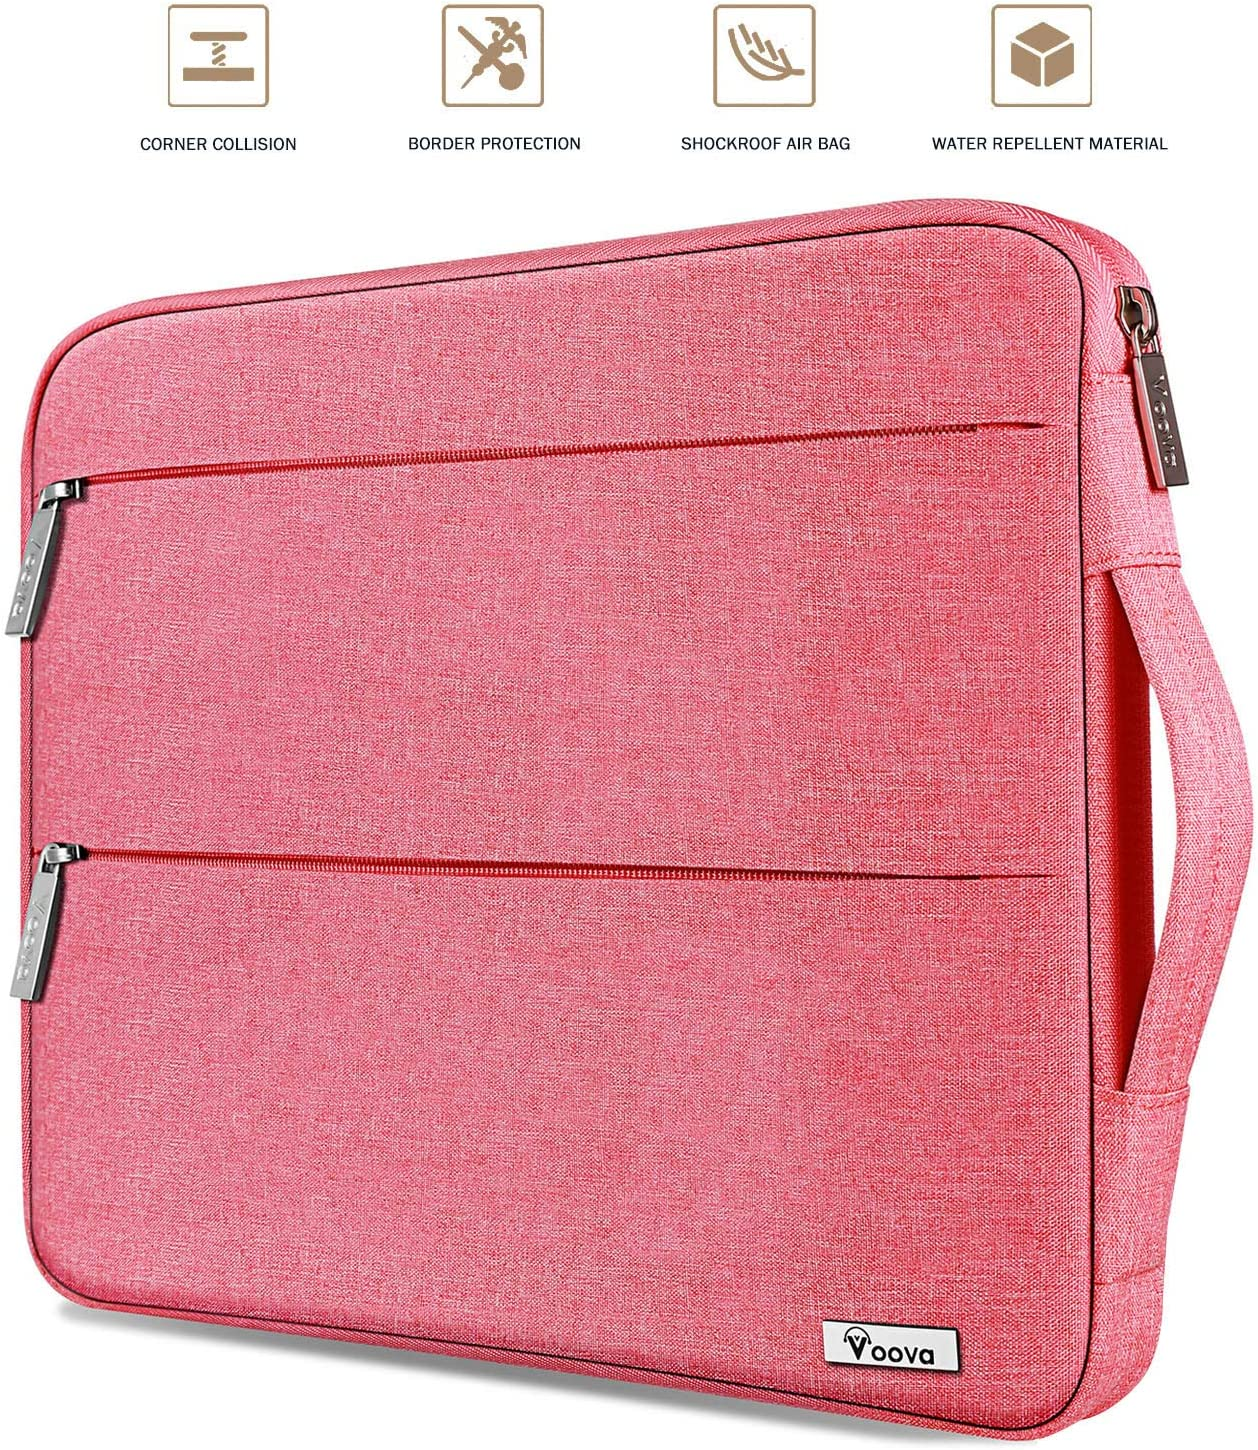 Voova Laptop Sleeve Case Compatible with 13-13.3 Inch MacBook Air/MacBook Pro, 13.5 Surface Book 2 / Laptop 3, 13 XPS/Chromebook Computer Notebook, Water Resistant Tablet Hand Bag for Women Girl, Pink